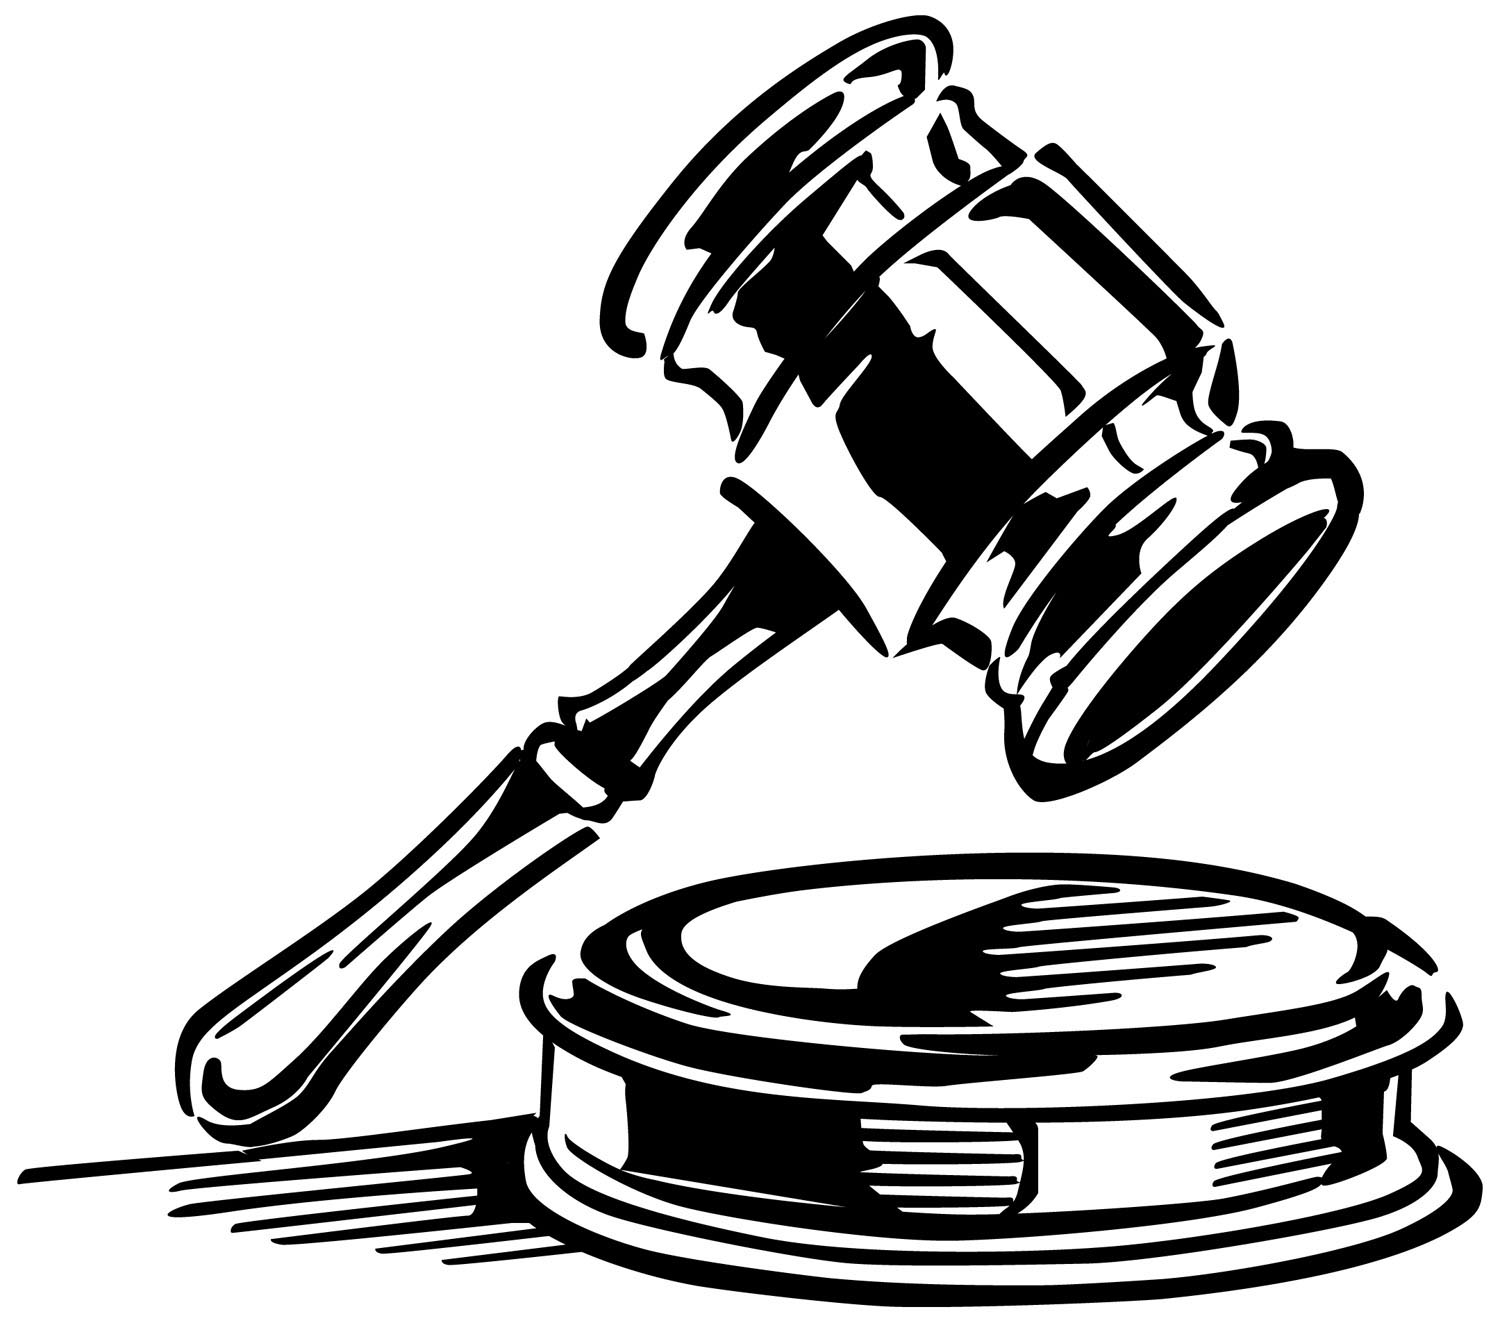 Free Gavel Images Download Free Clip Art Free Clip Art